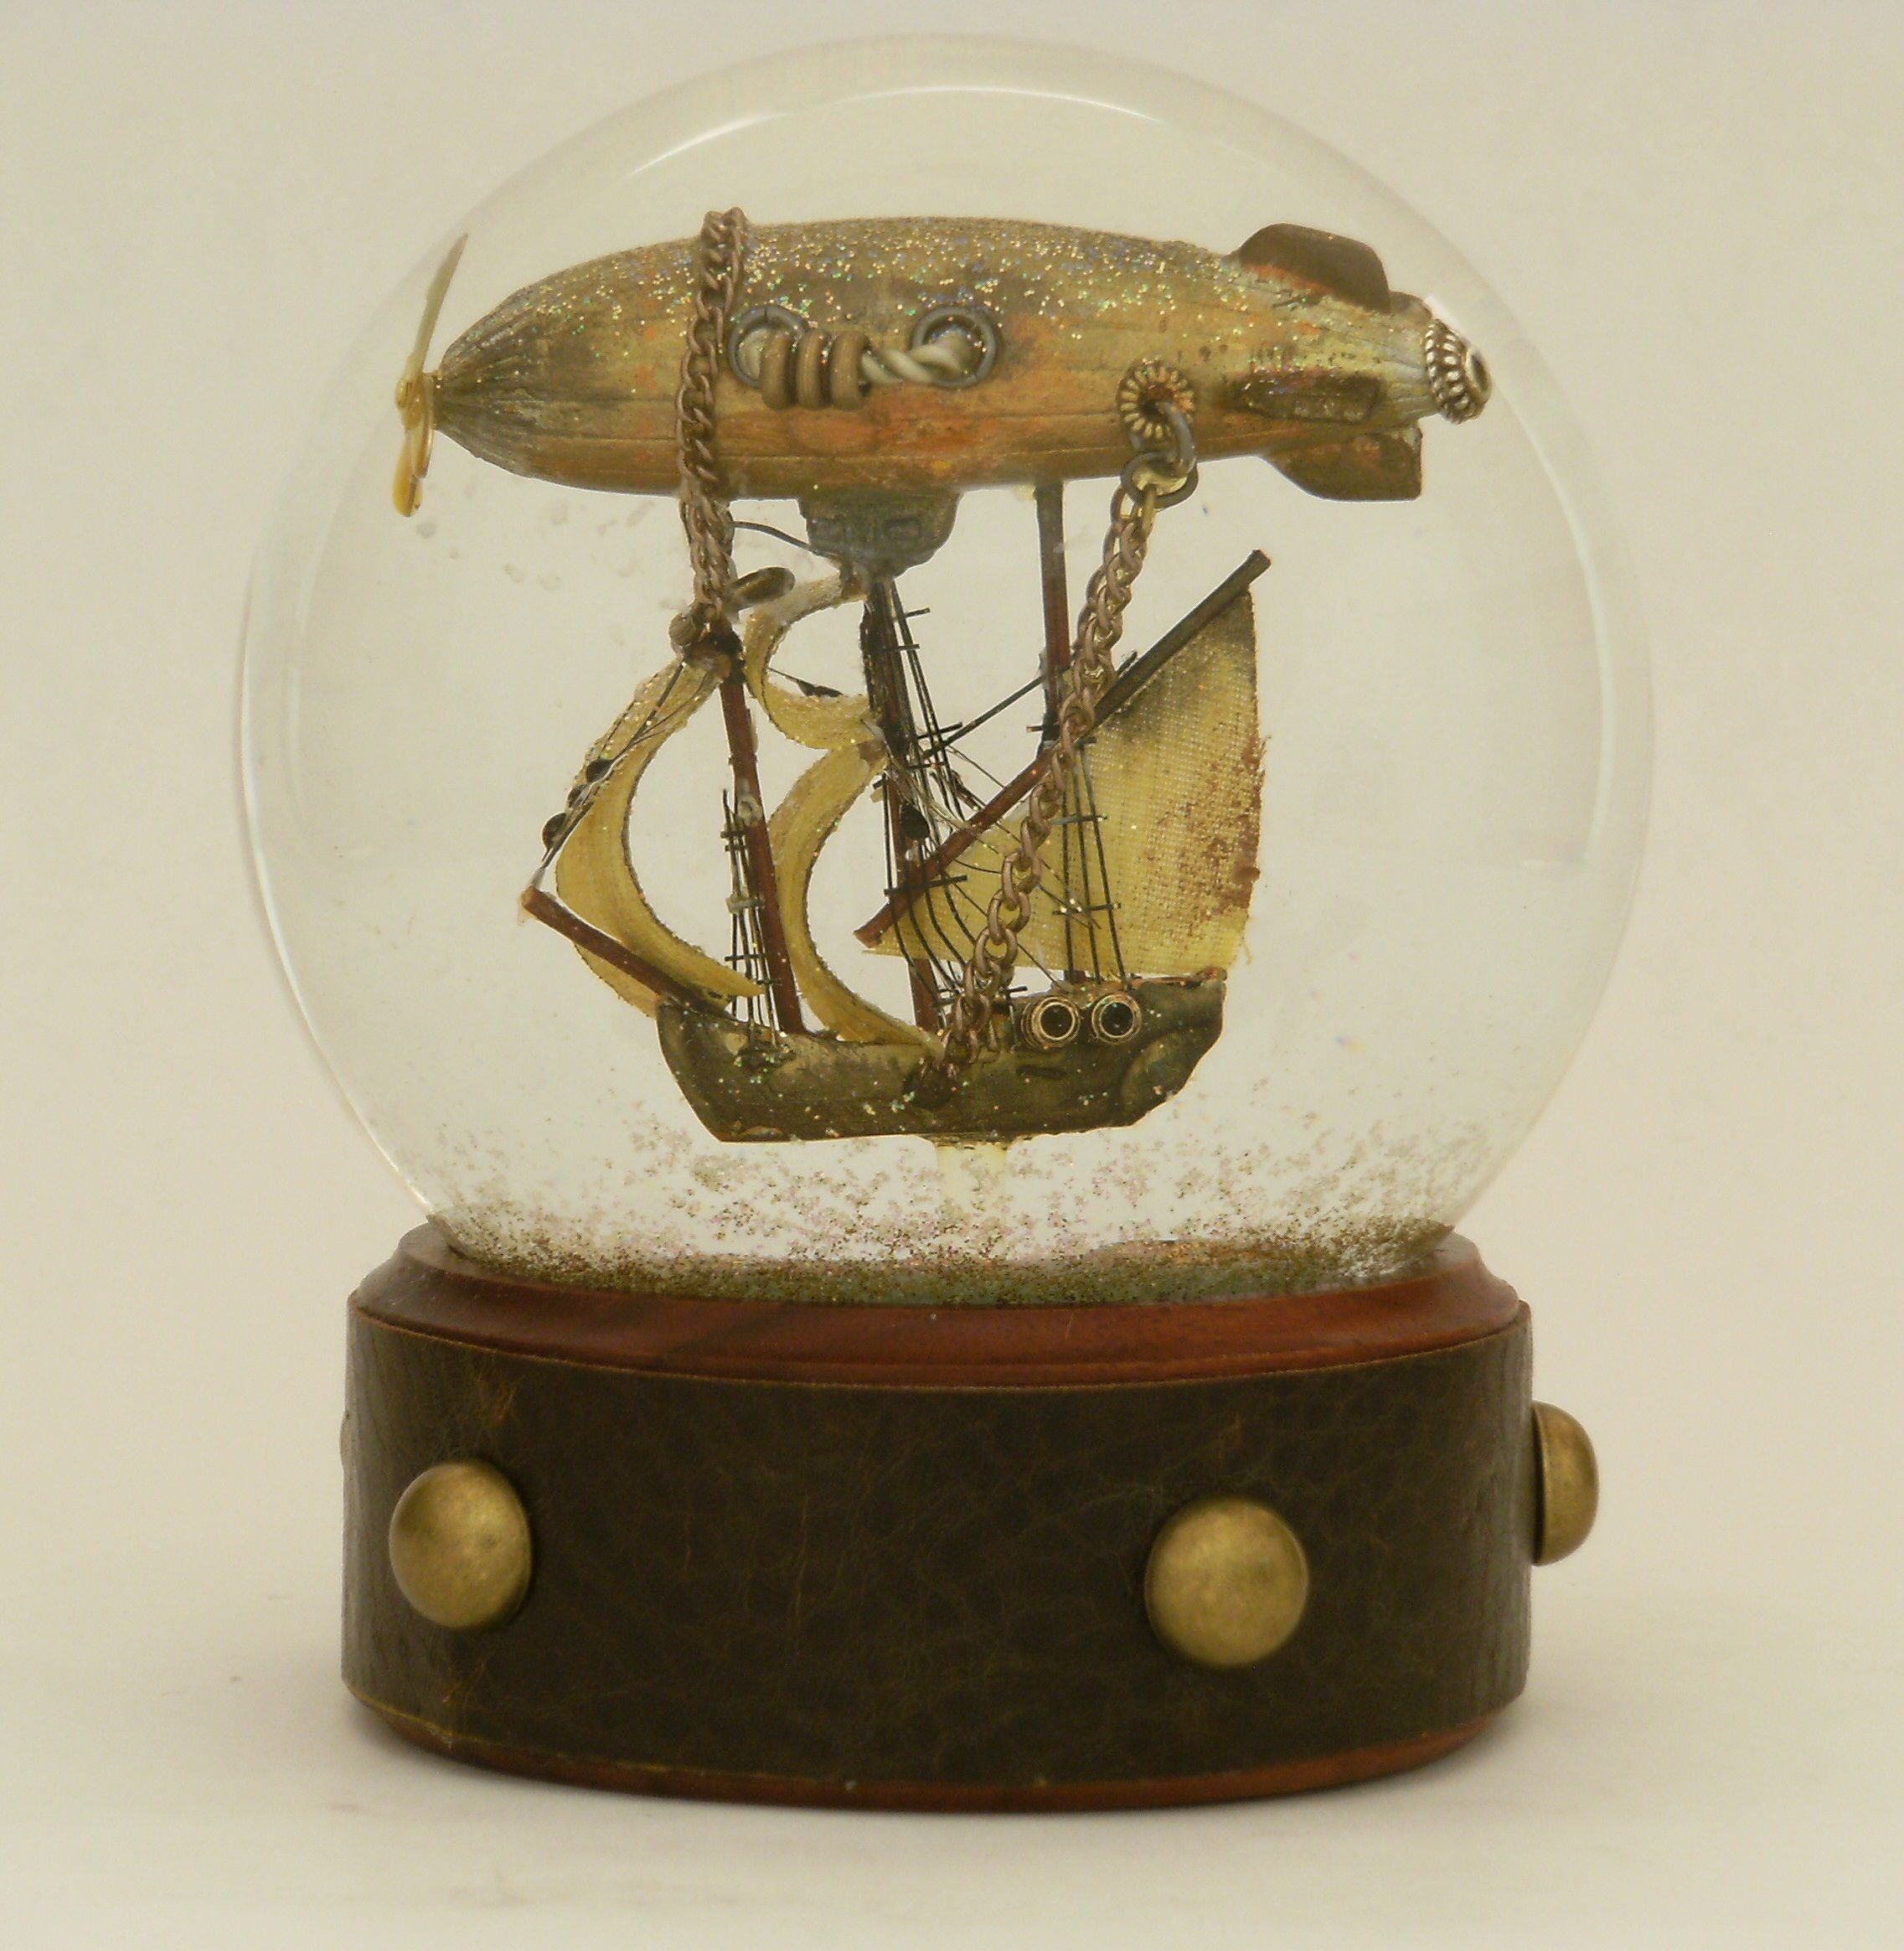 'Airship voyager',  snowglobe by Camryn Forrest.